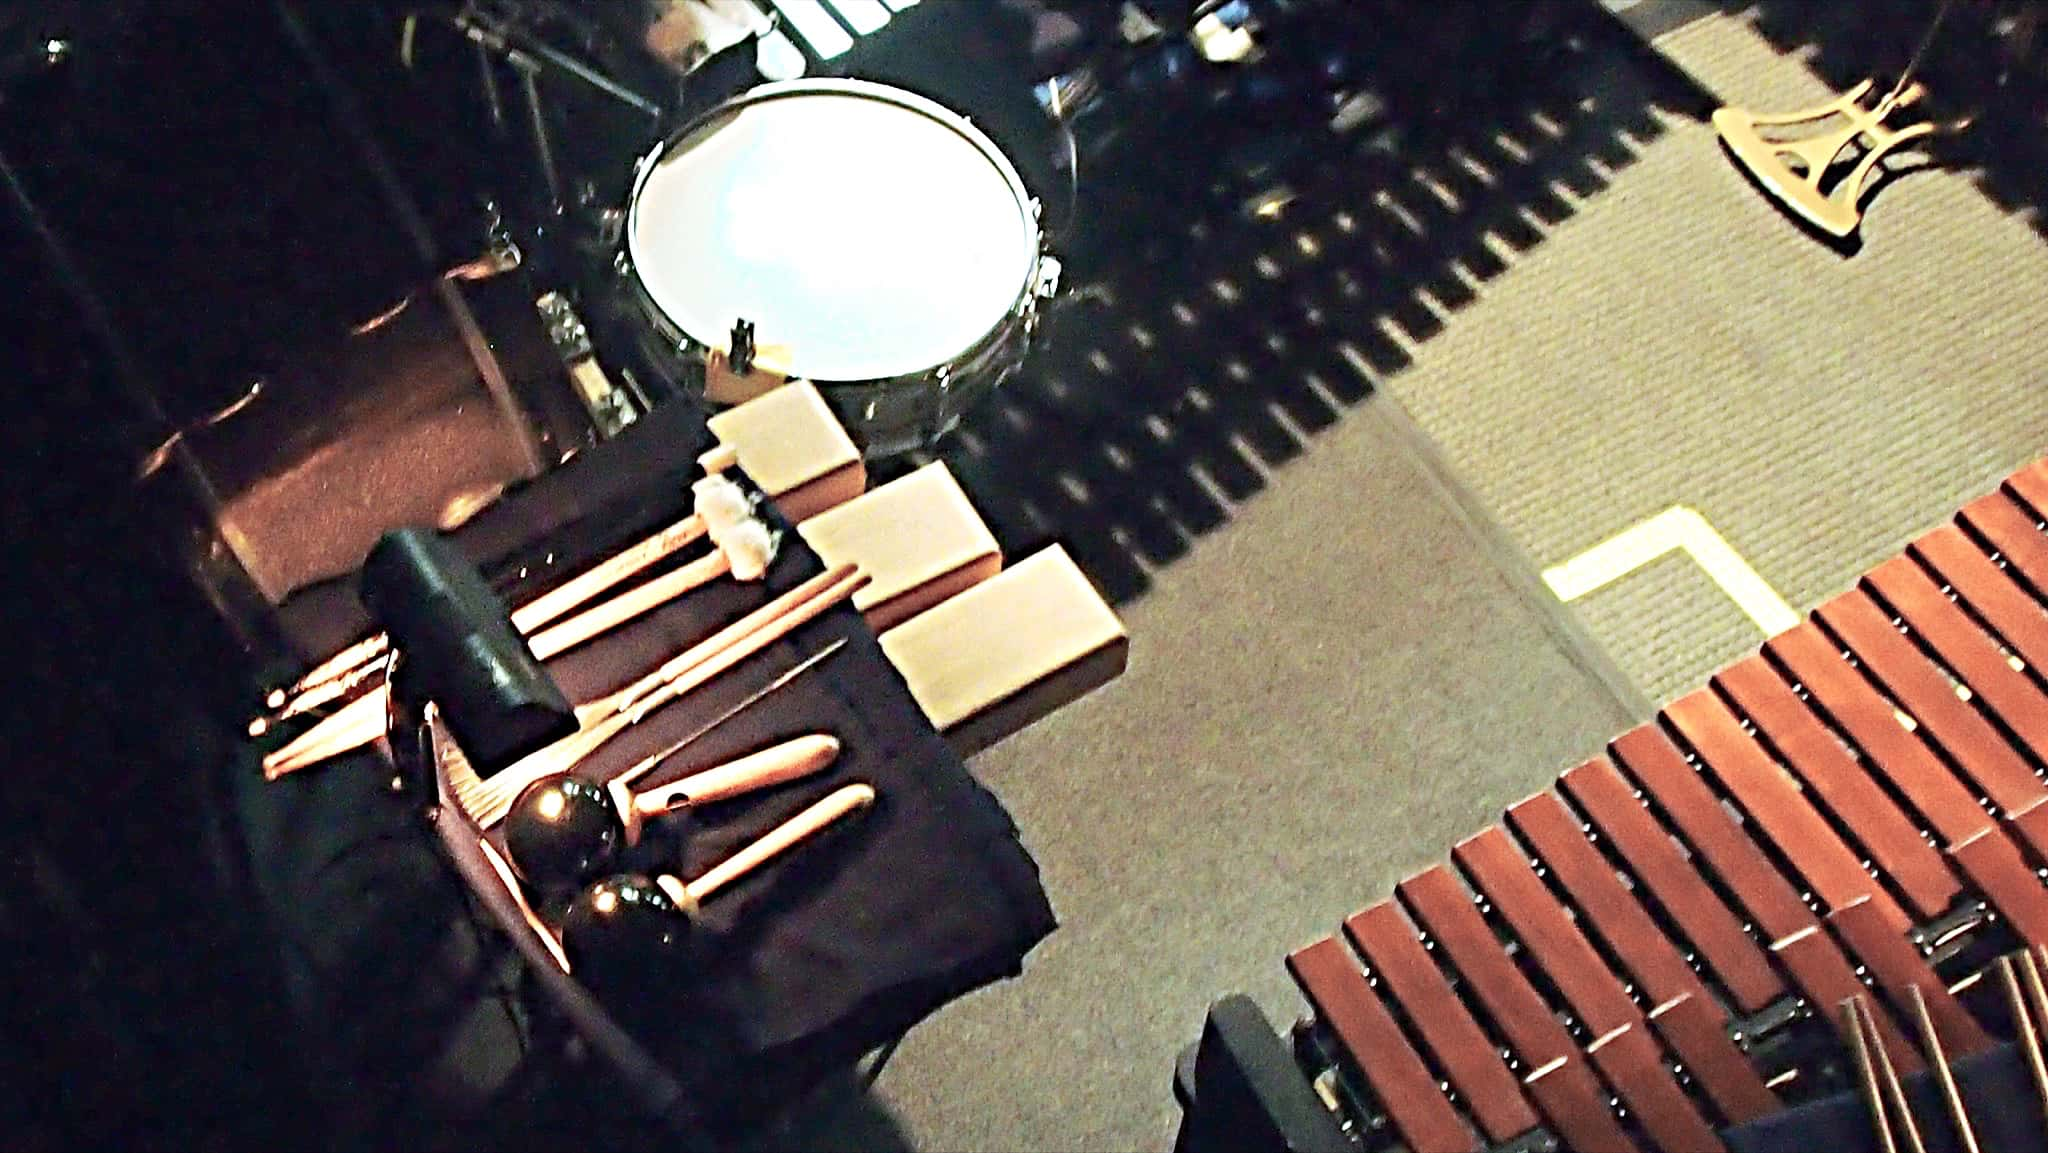 Greg Landes' setup for the Off Broadway production of The Landing at the Vineyard Theatre in New York City.